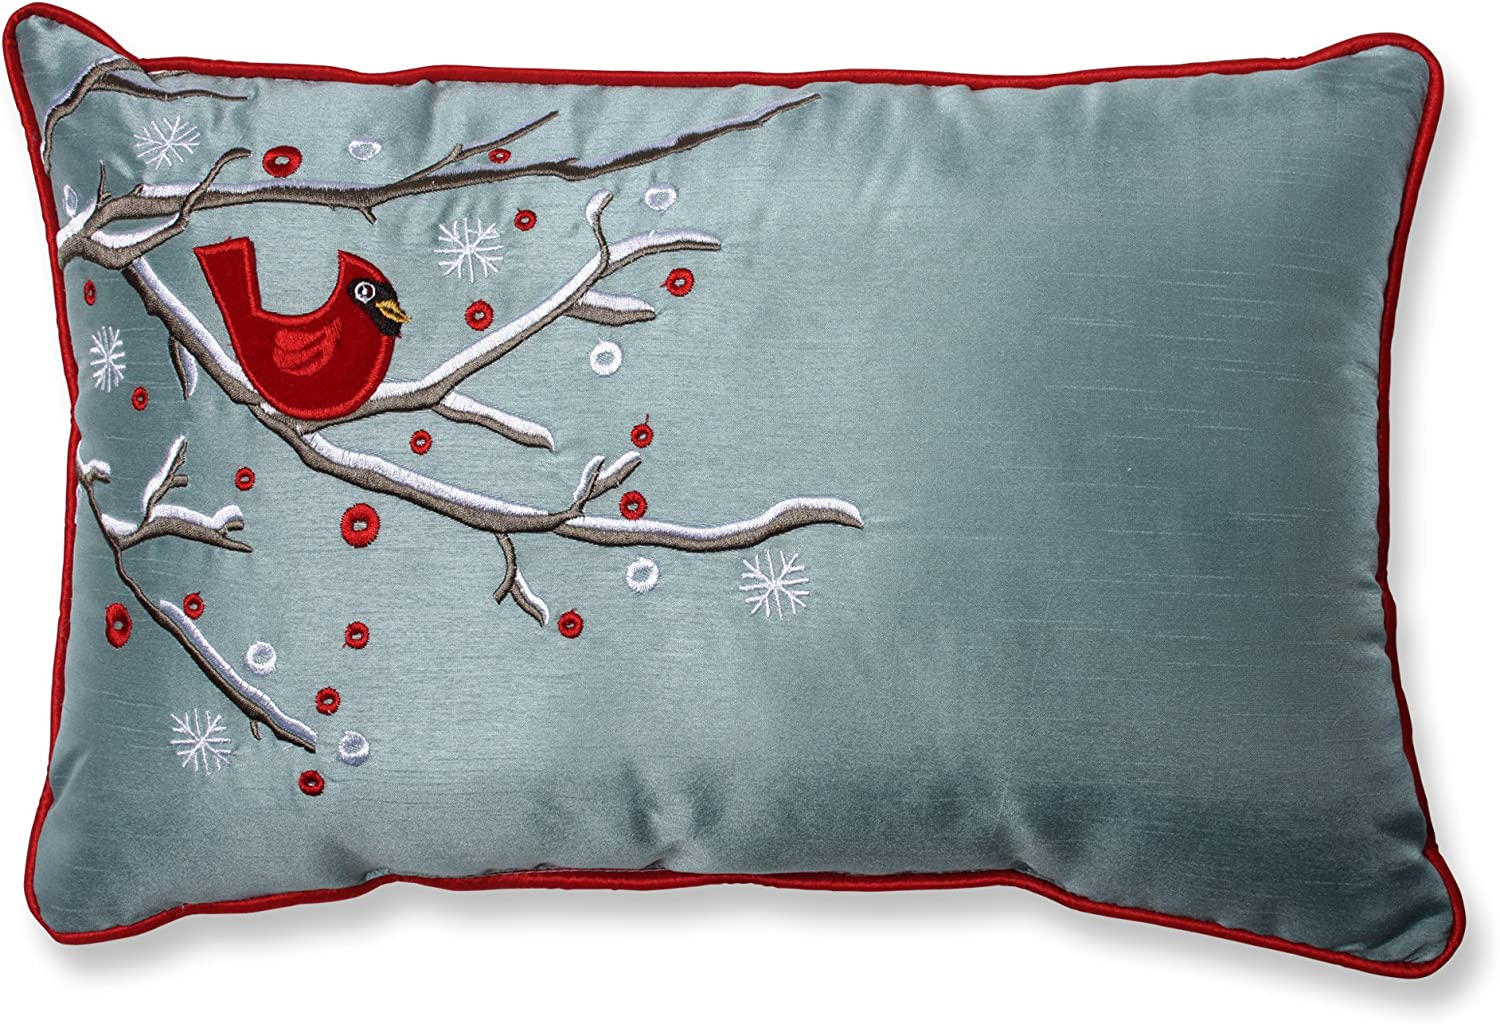 """Pillow Perfect Holiday Cardinal on Snowy Branch Rectangular Throw Pillow, 11"""" x 17"""", Silver/Red"""